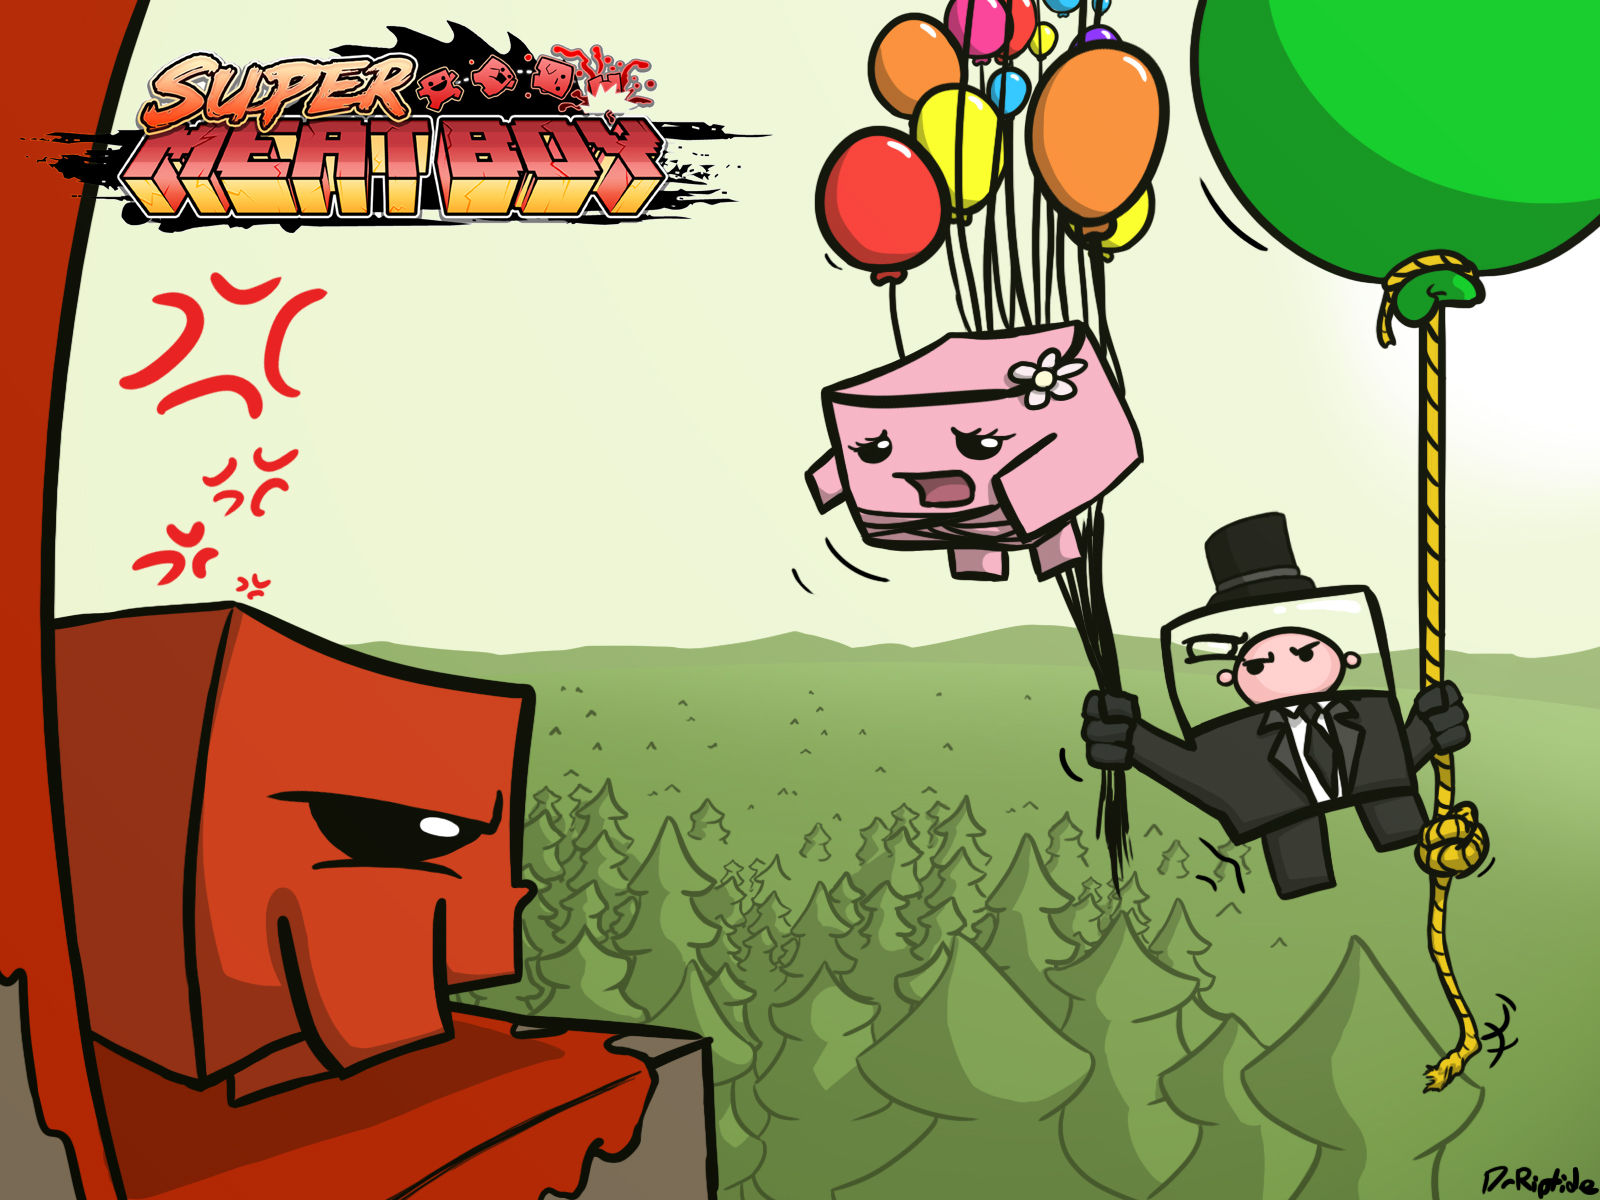 Super Meat Boy wallpaper by DrRiptide